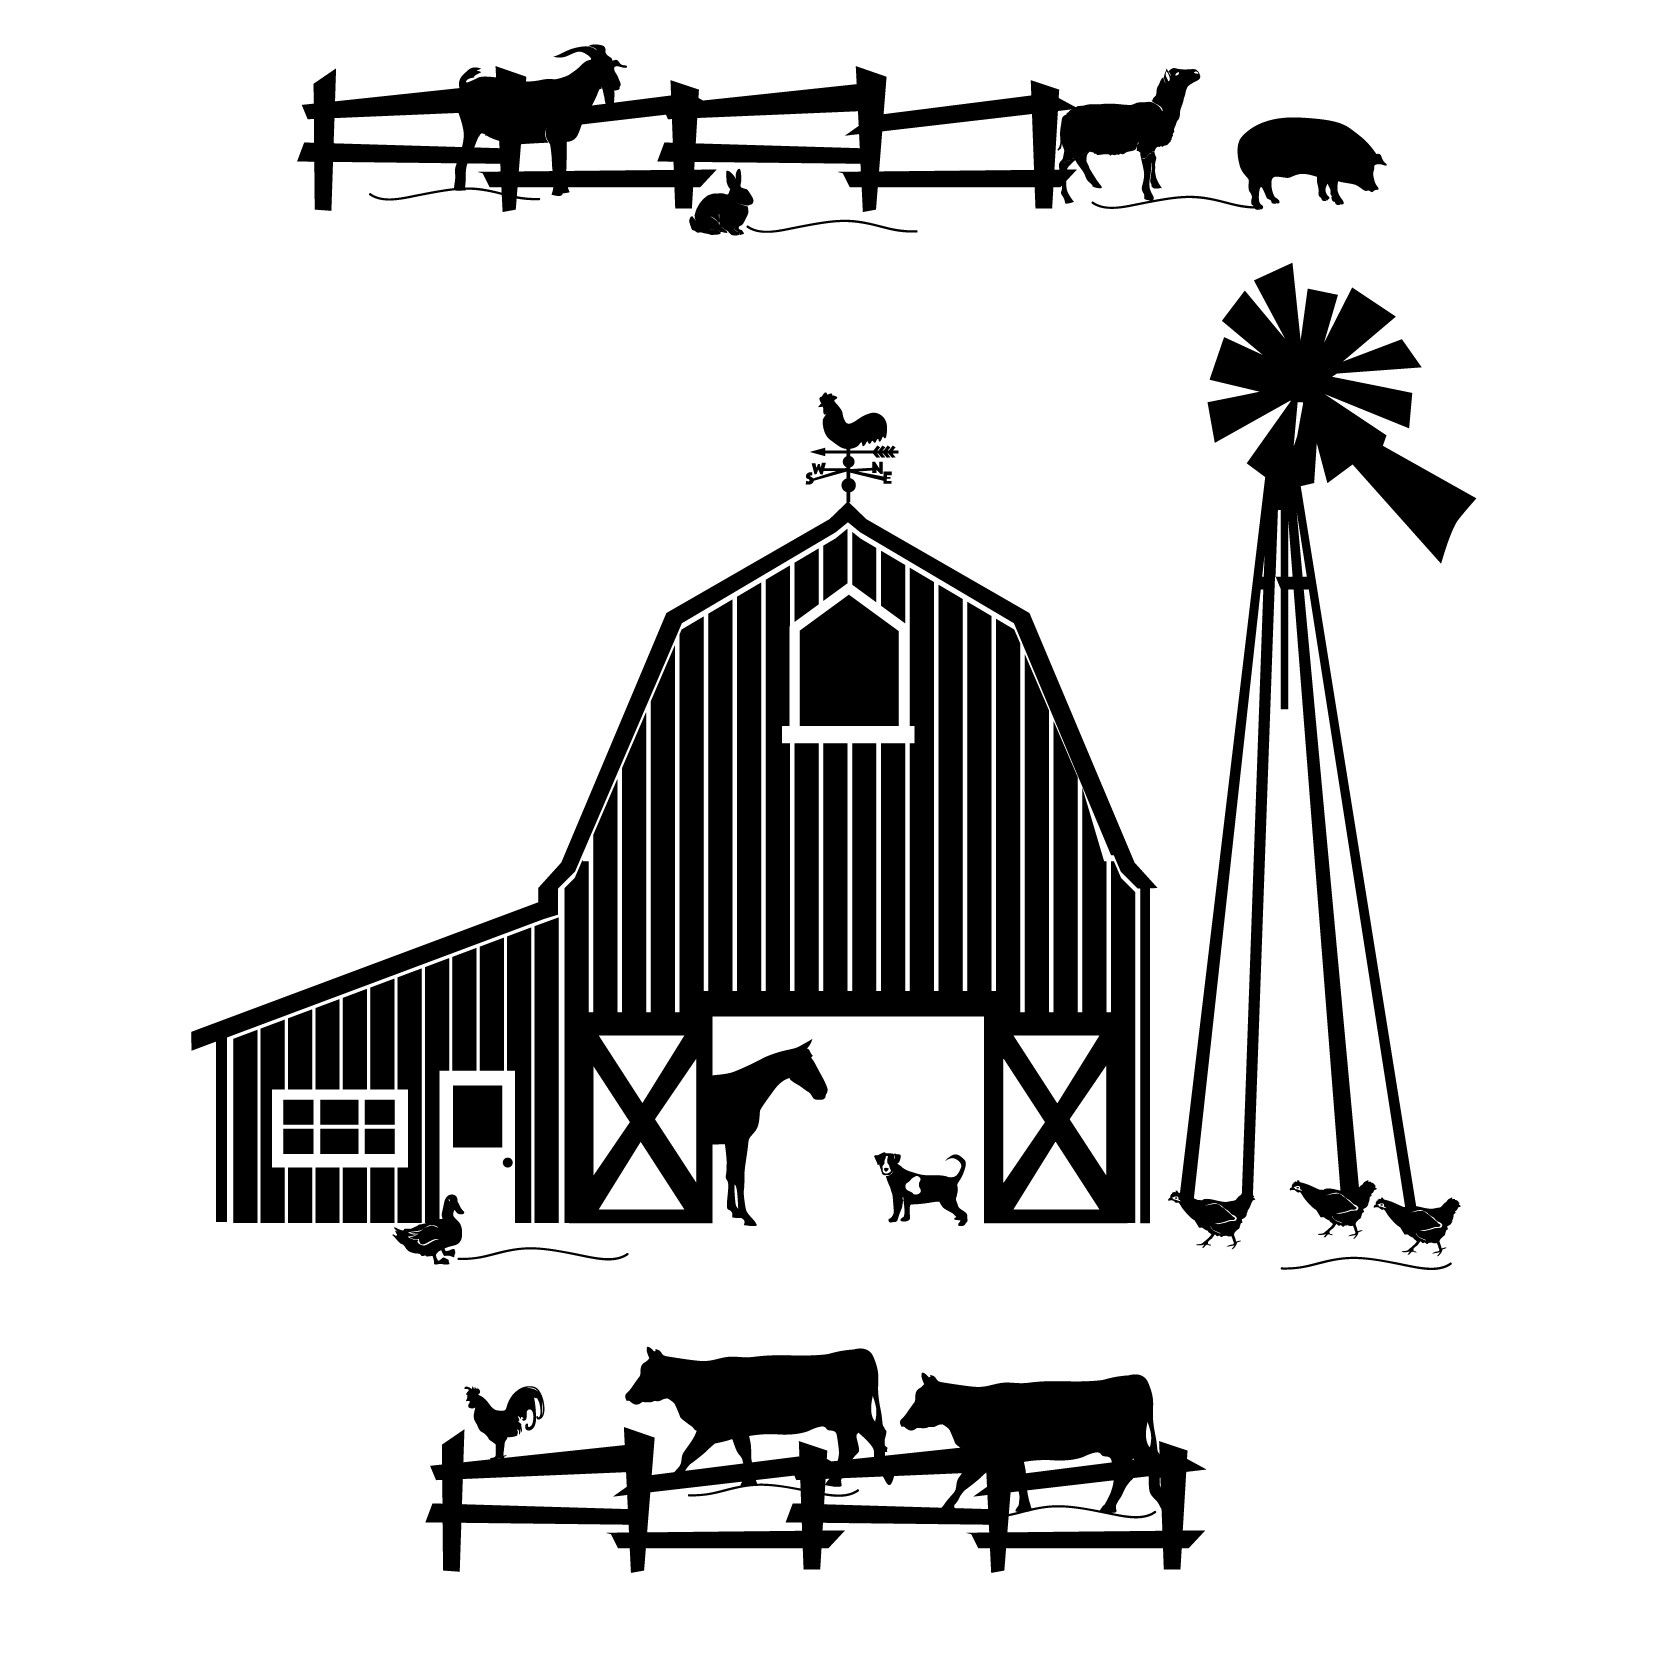 Farm Scene Clipart Black And White